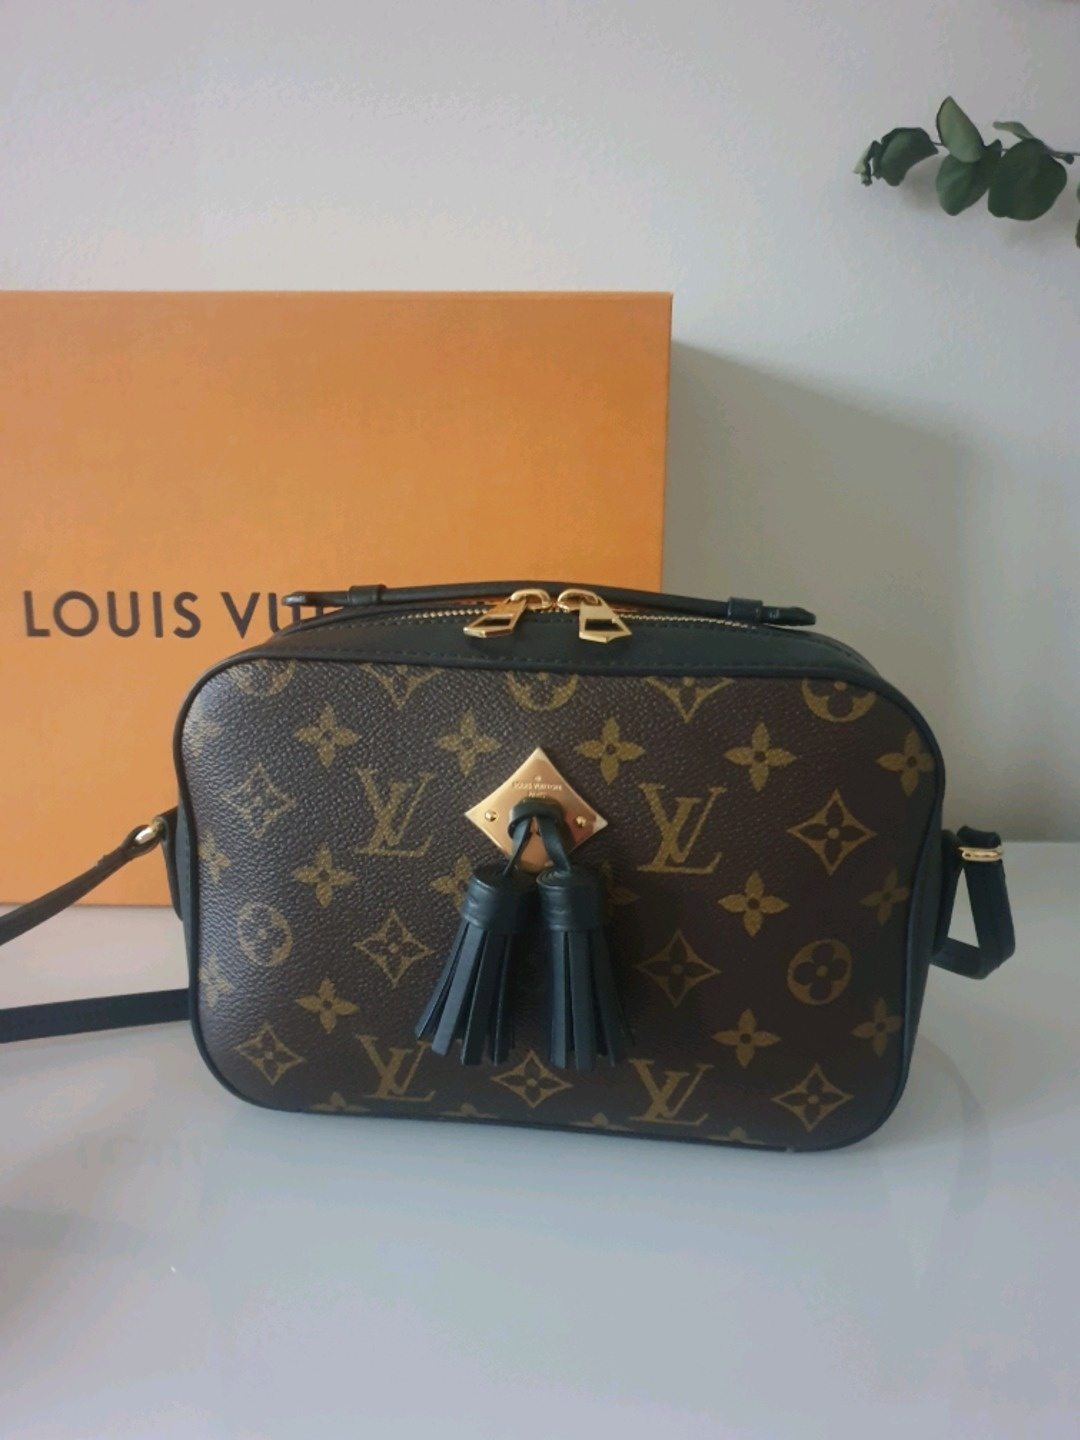 Damers tasker og punge - LOUIS VUITTON photo 1